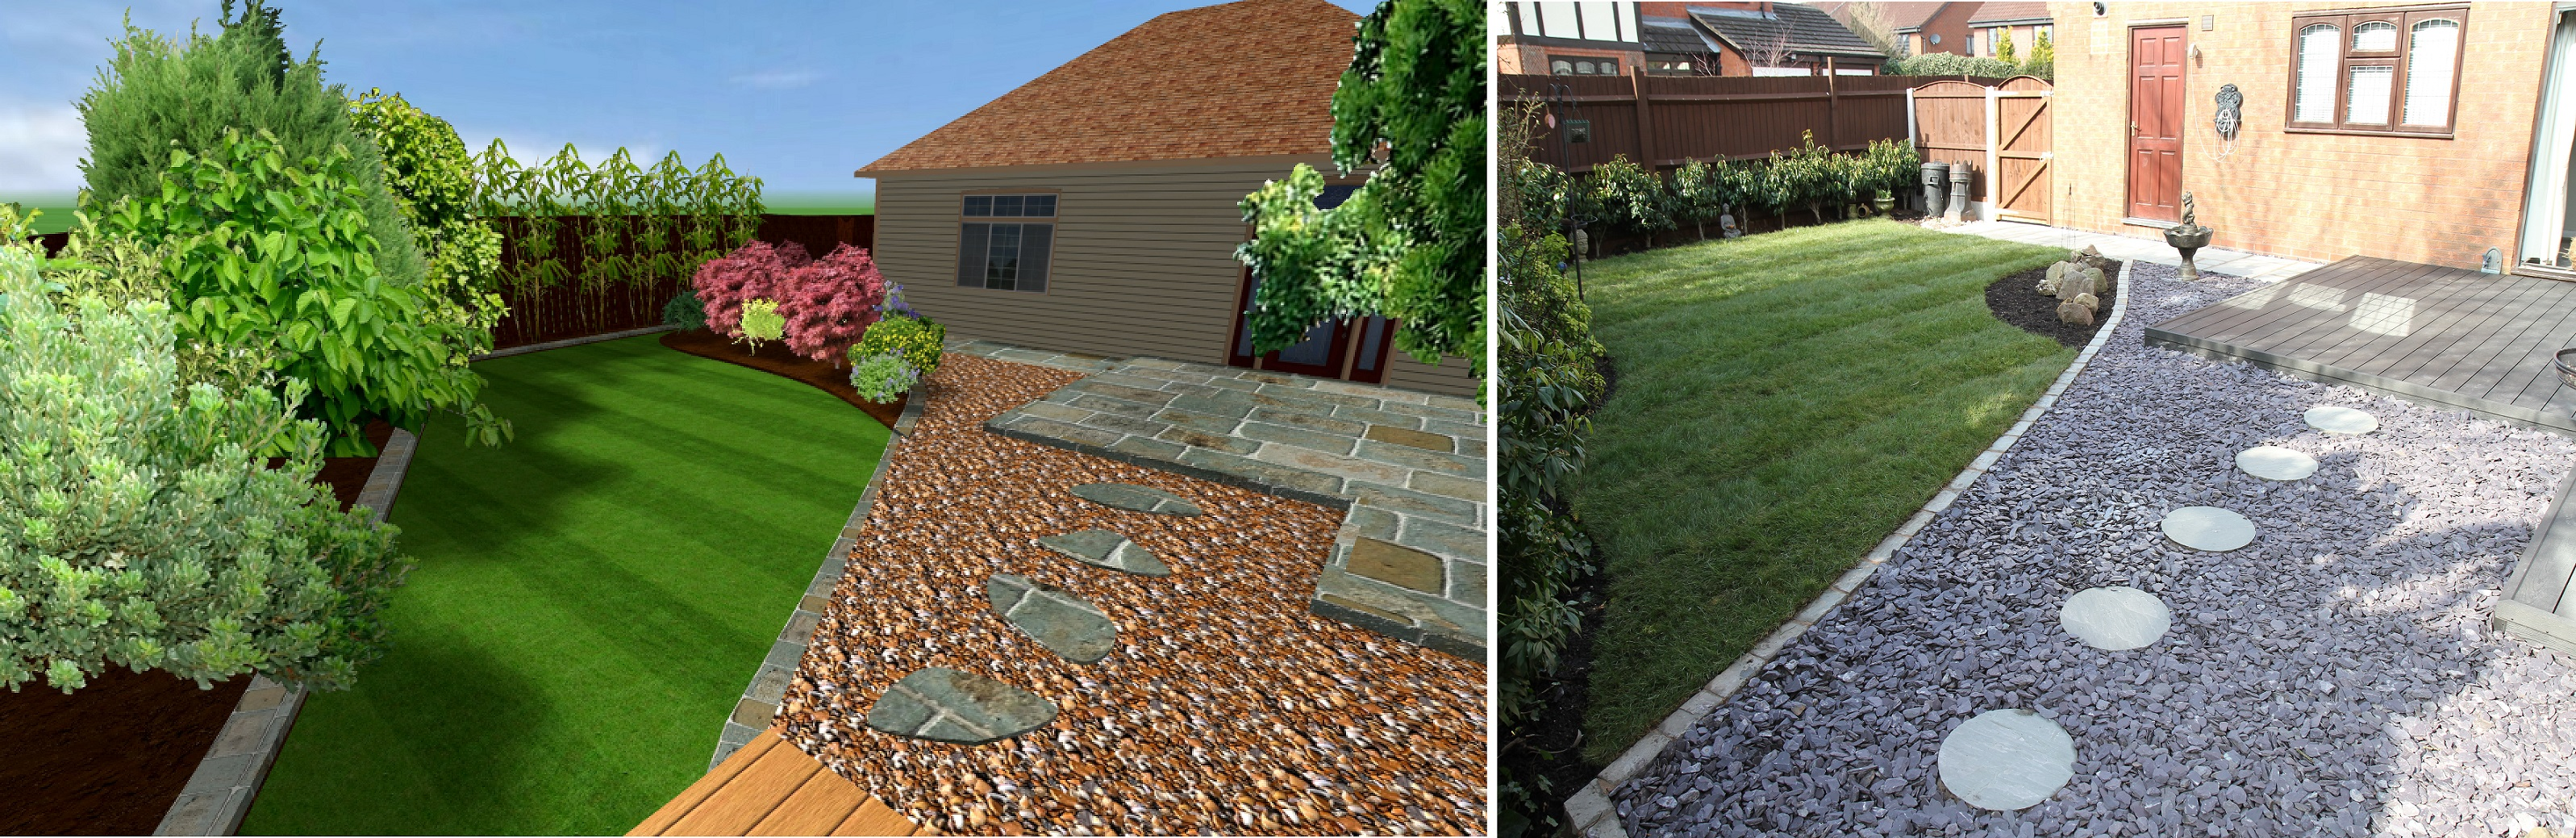 Landscaping in Newcastle under Lyme - 3D CAD Drawing and Completed Landscaping Staffordshire